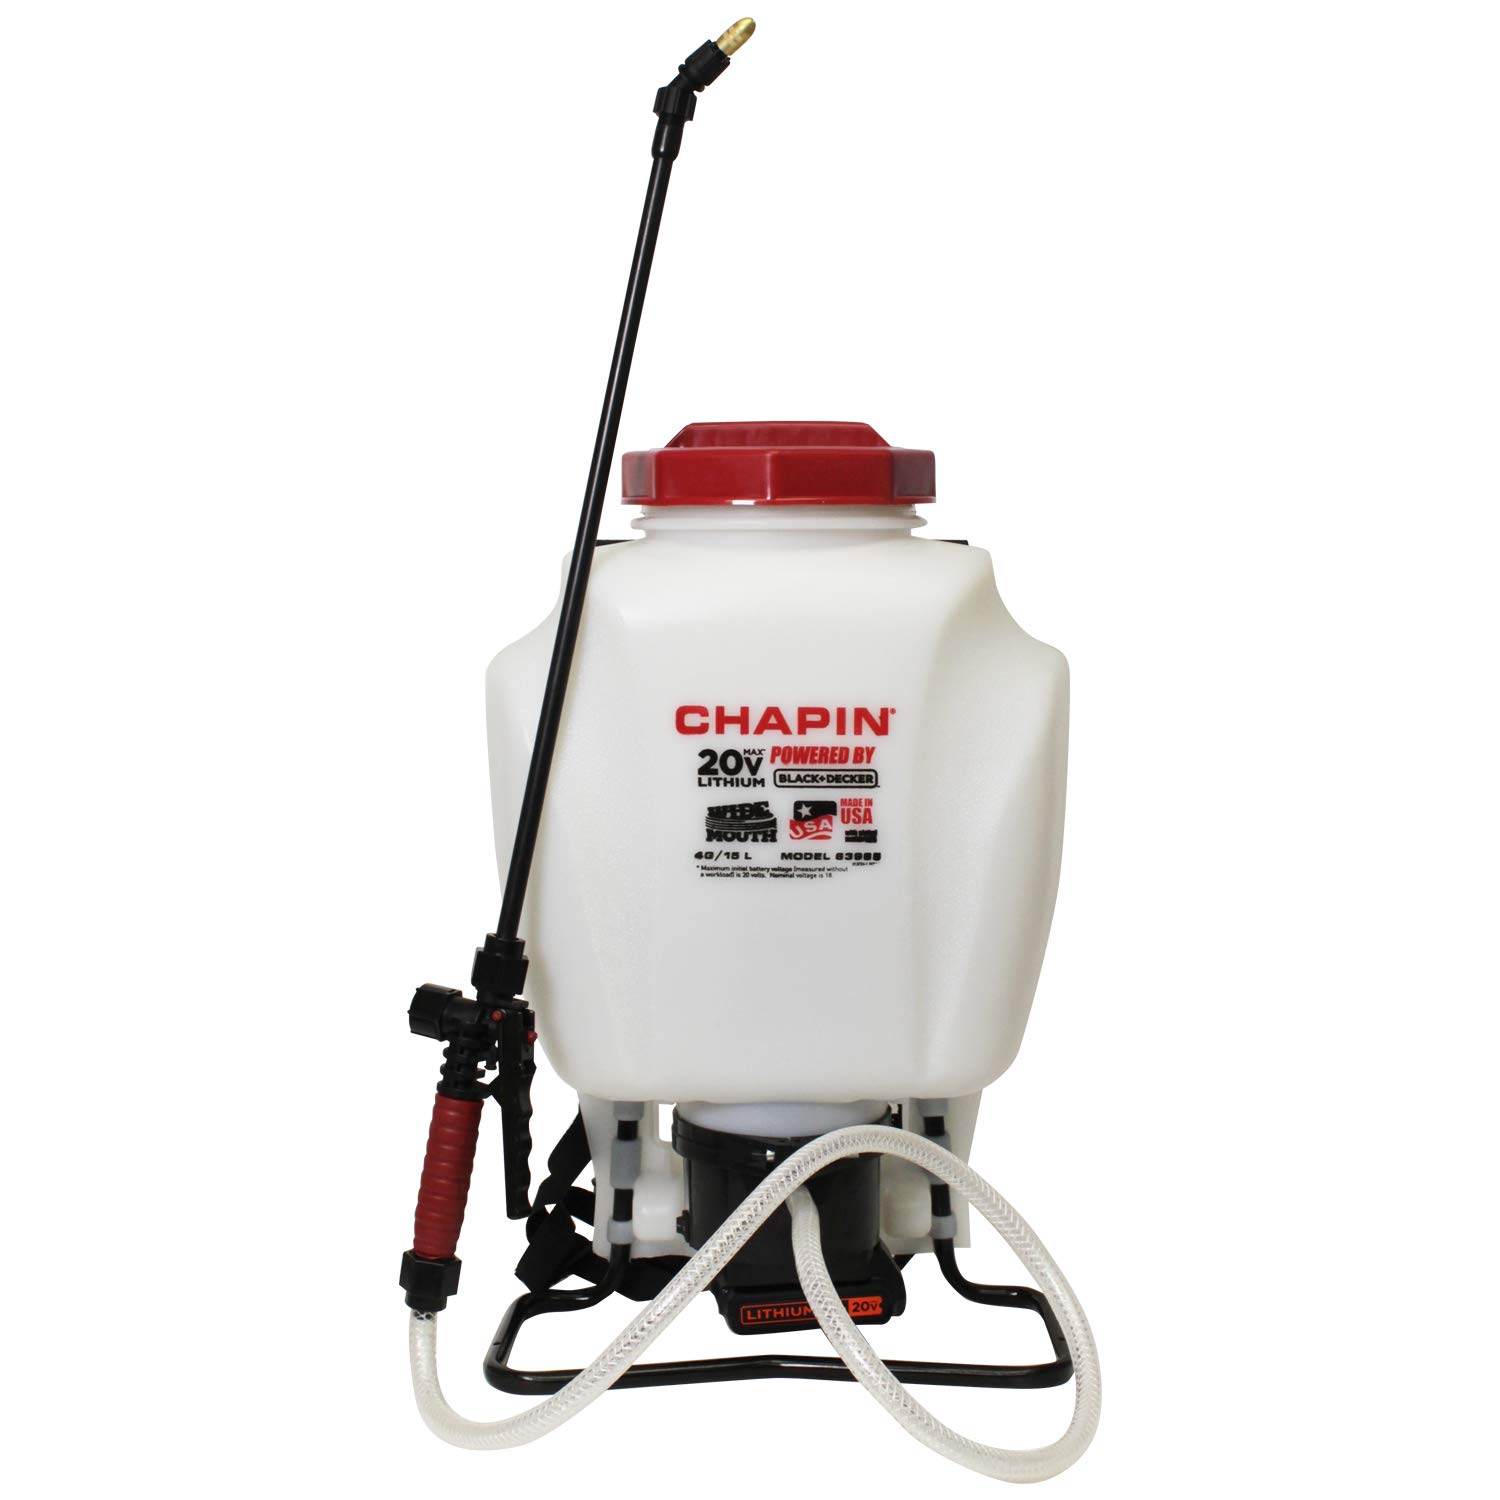 Chapin International Battery Powered Backpack Sprayer